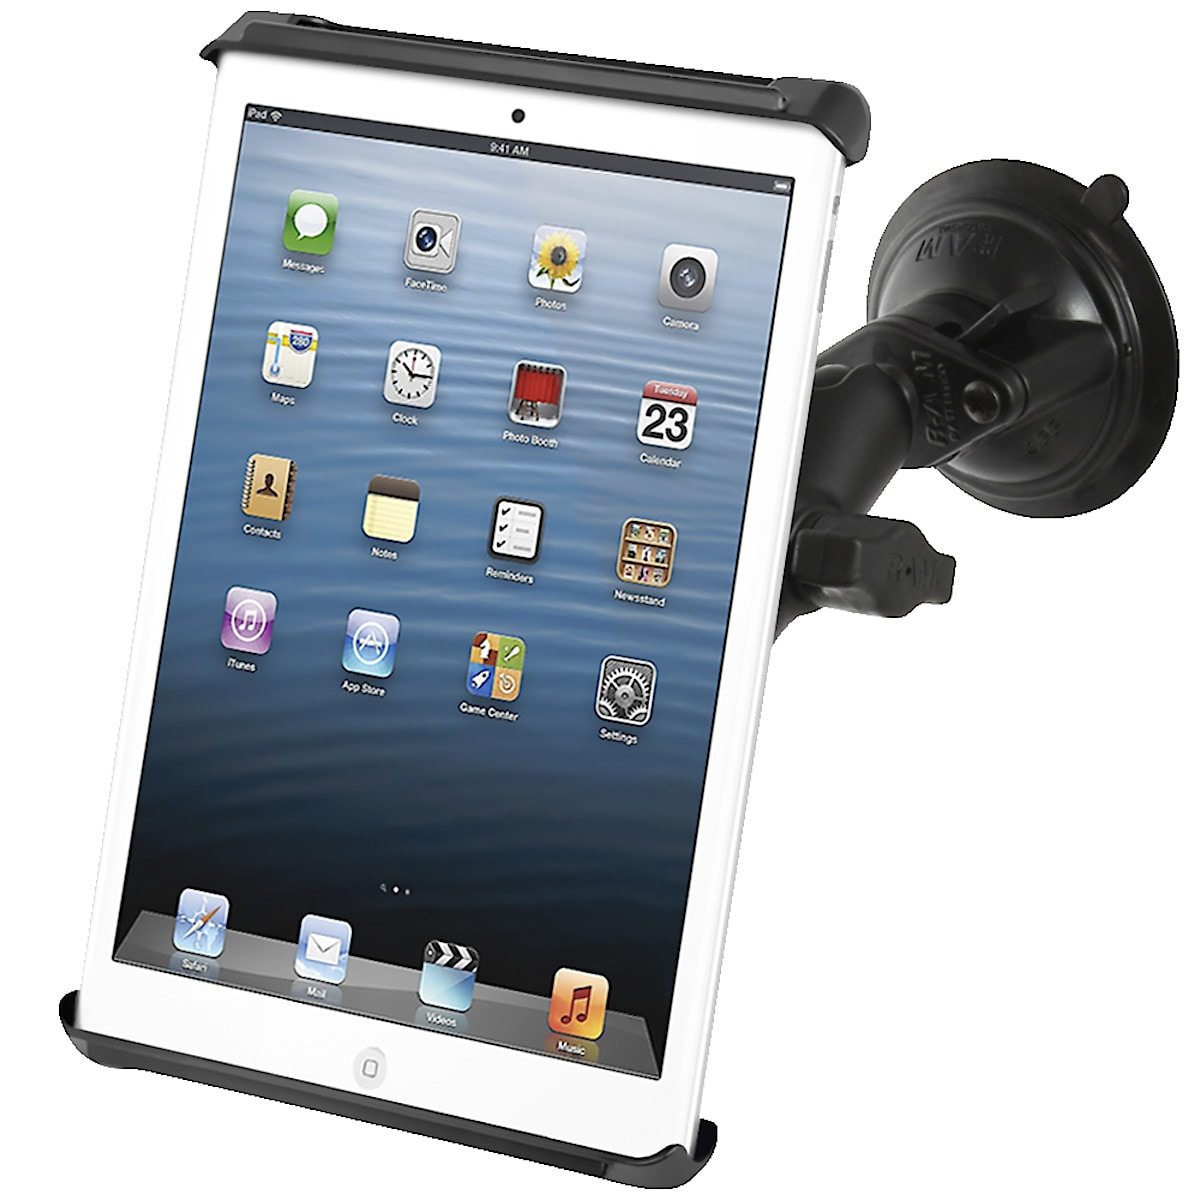 RAM Tablet Holder with Suction Cup Base